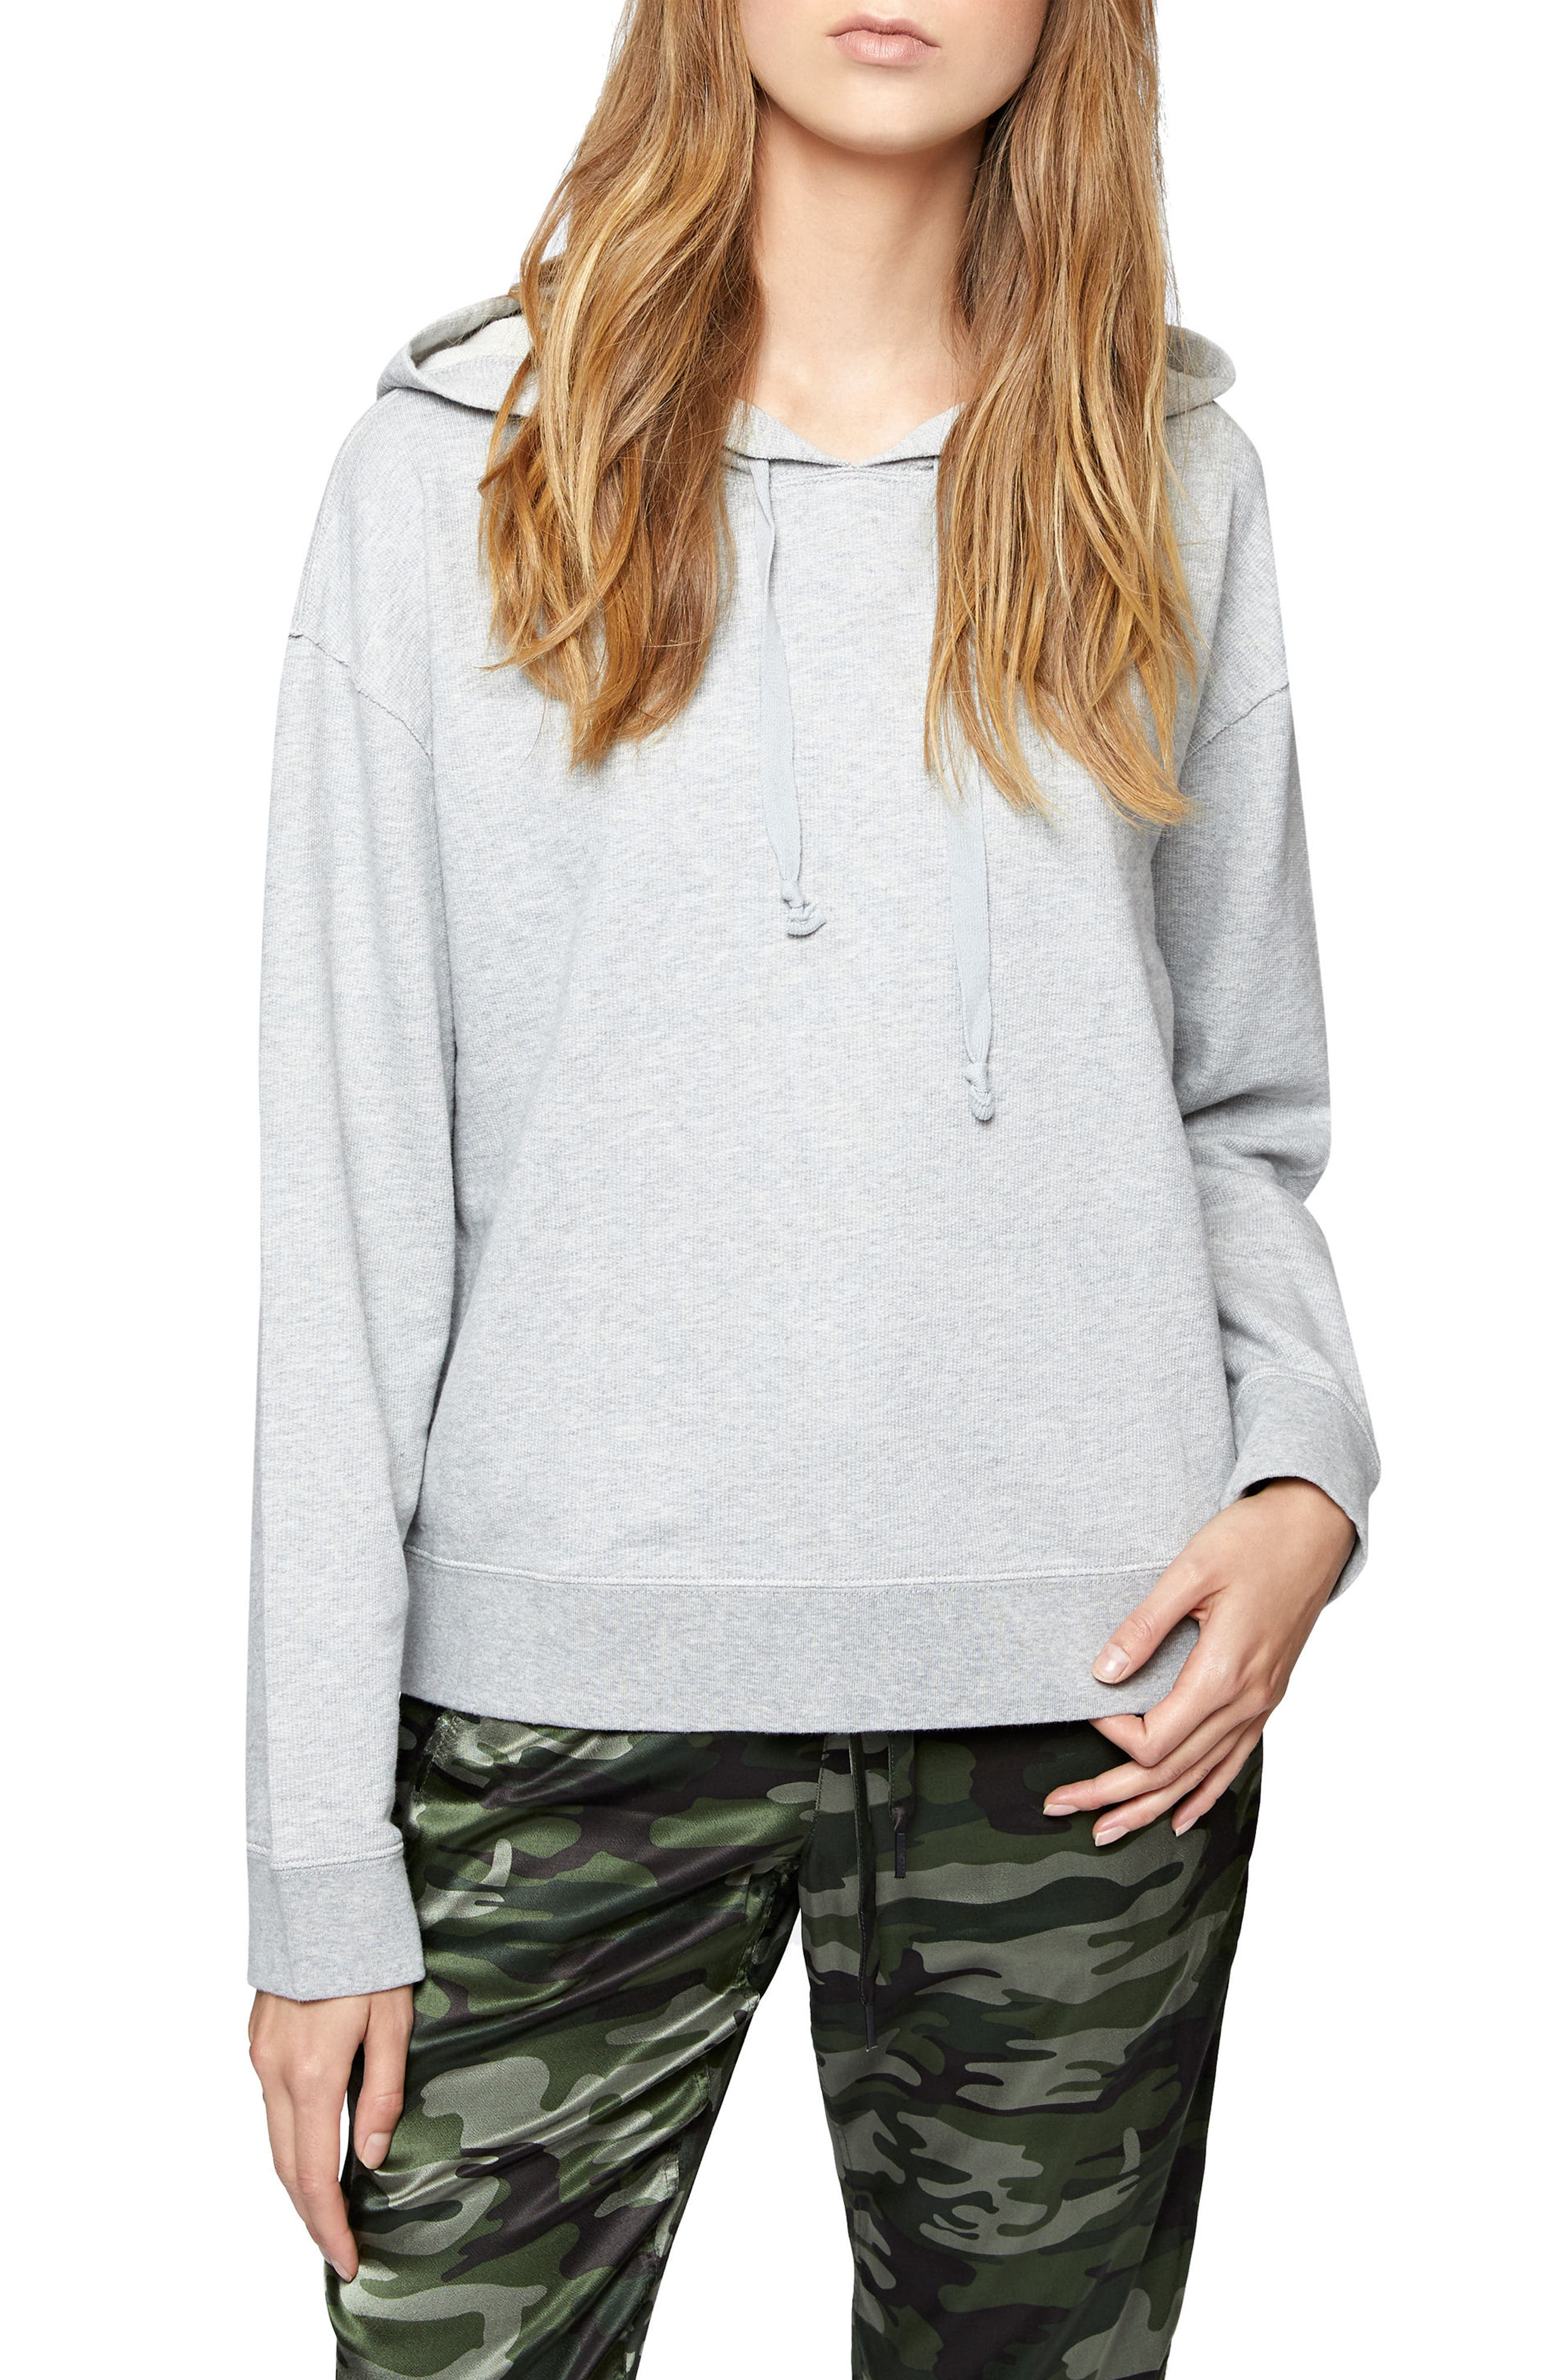 Venice Hooded Sweatshirt,                         Main,                         color, Heather Grey